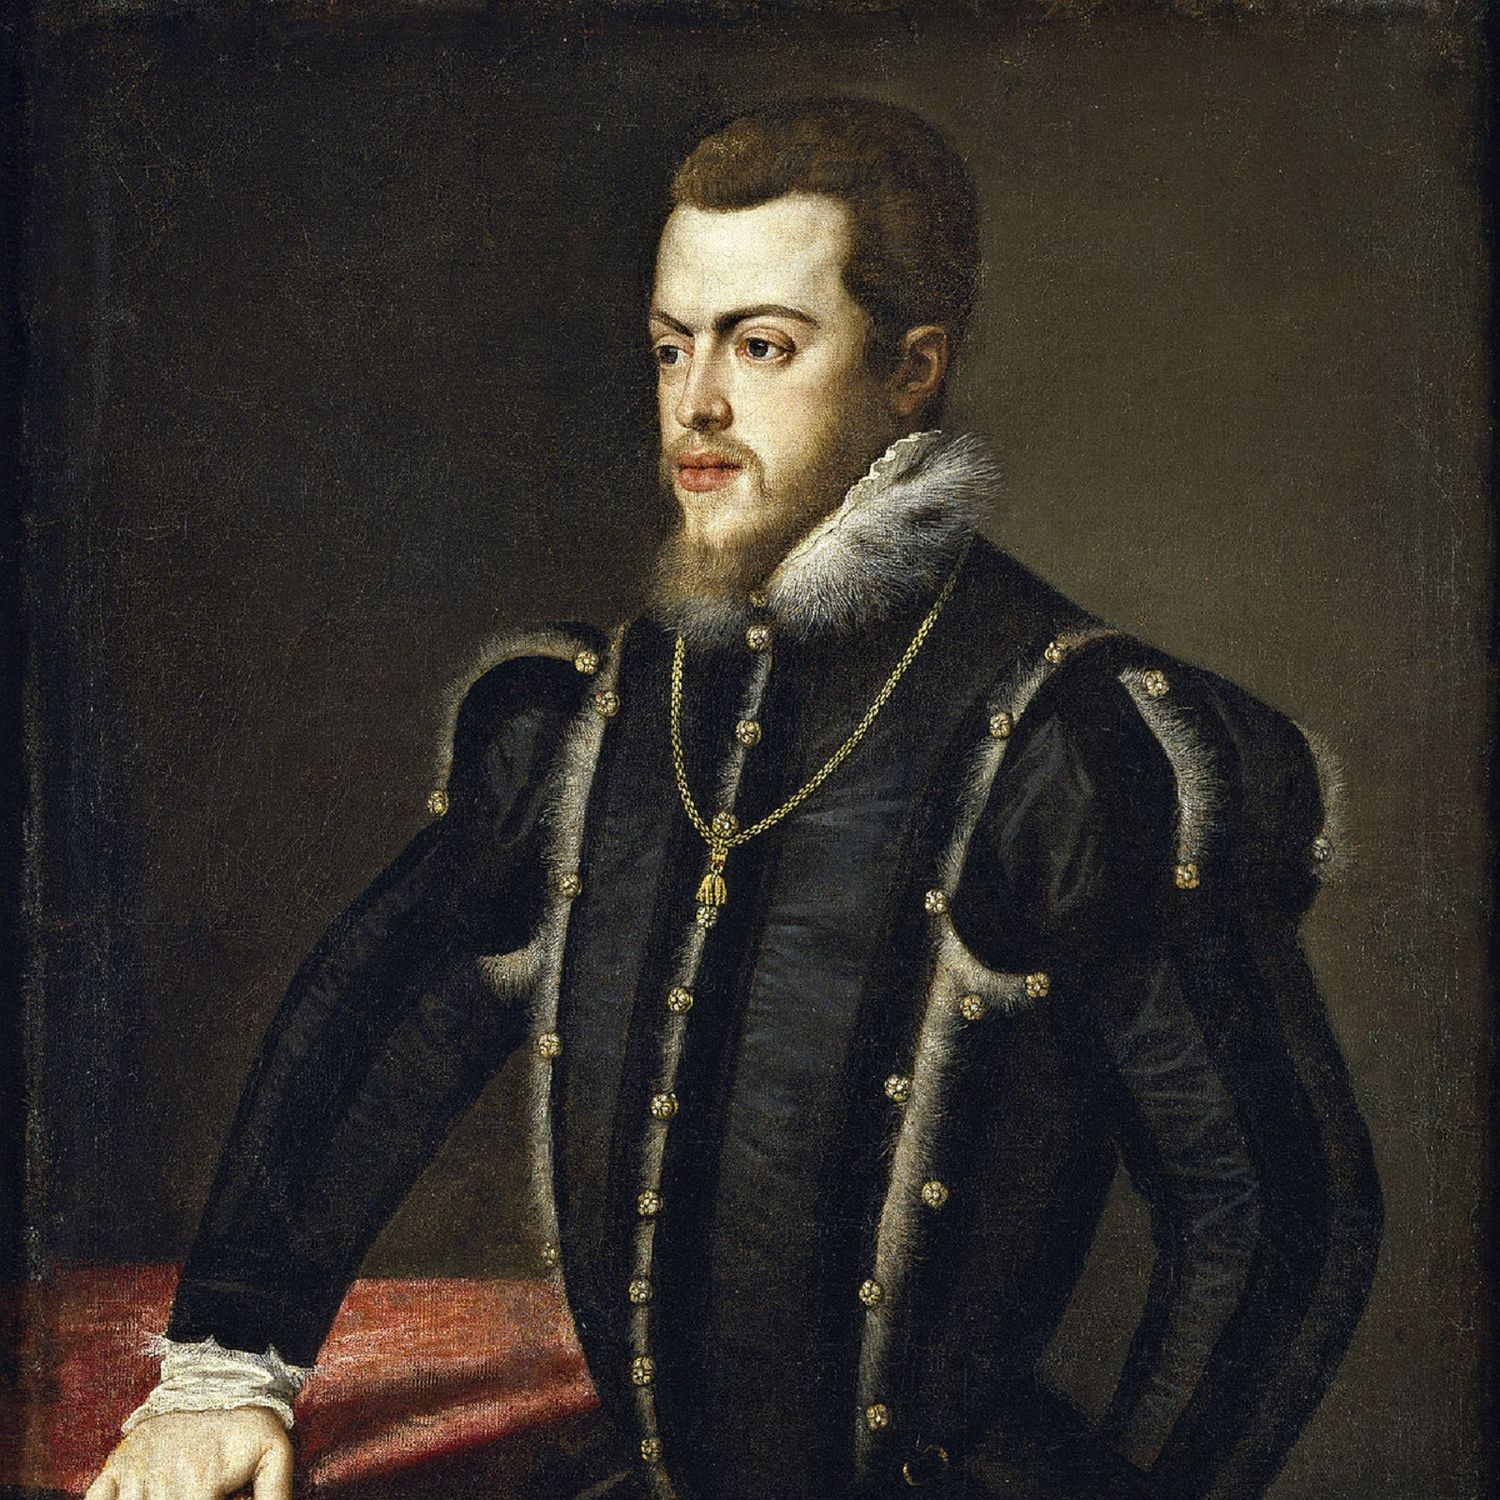 Supplemental - Philip of Spain: Husband of the Queen, King of England